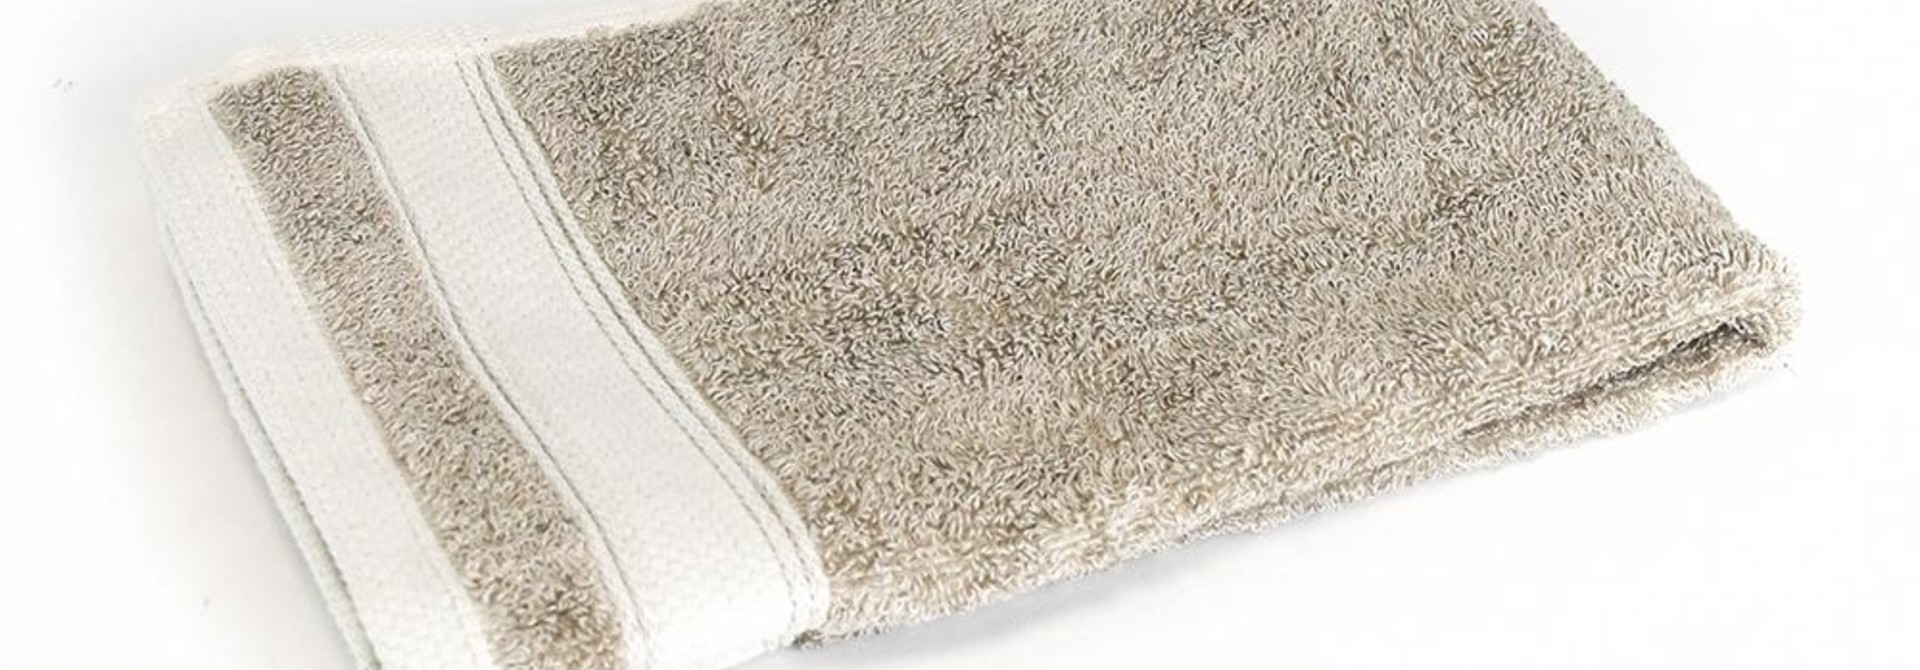 Spa Bath Towel - Baden - Beige/Cream